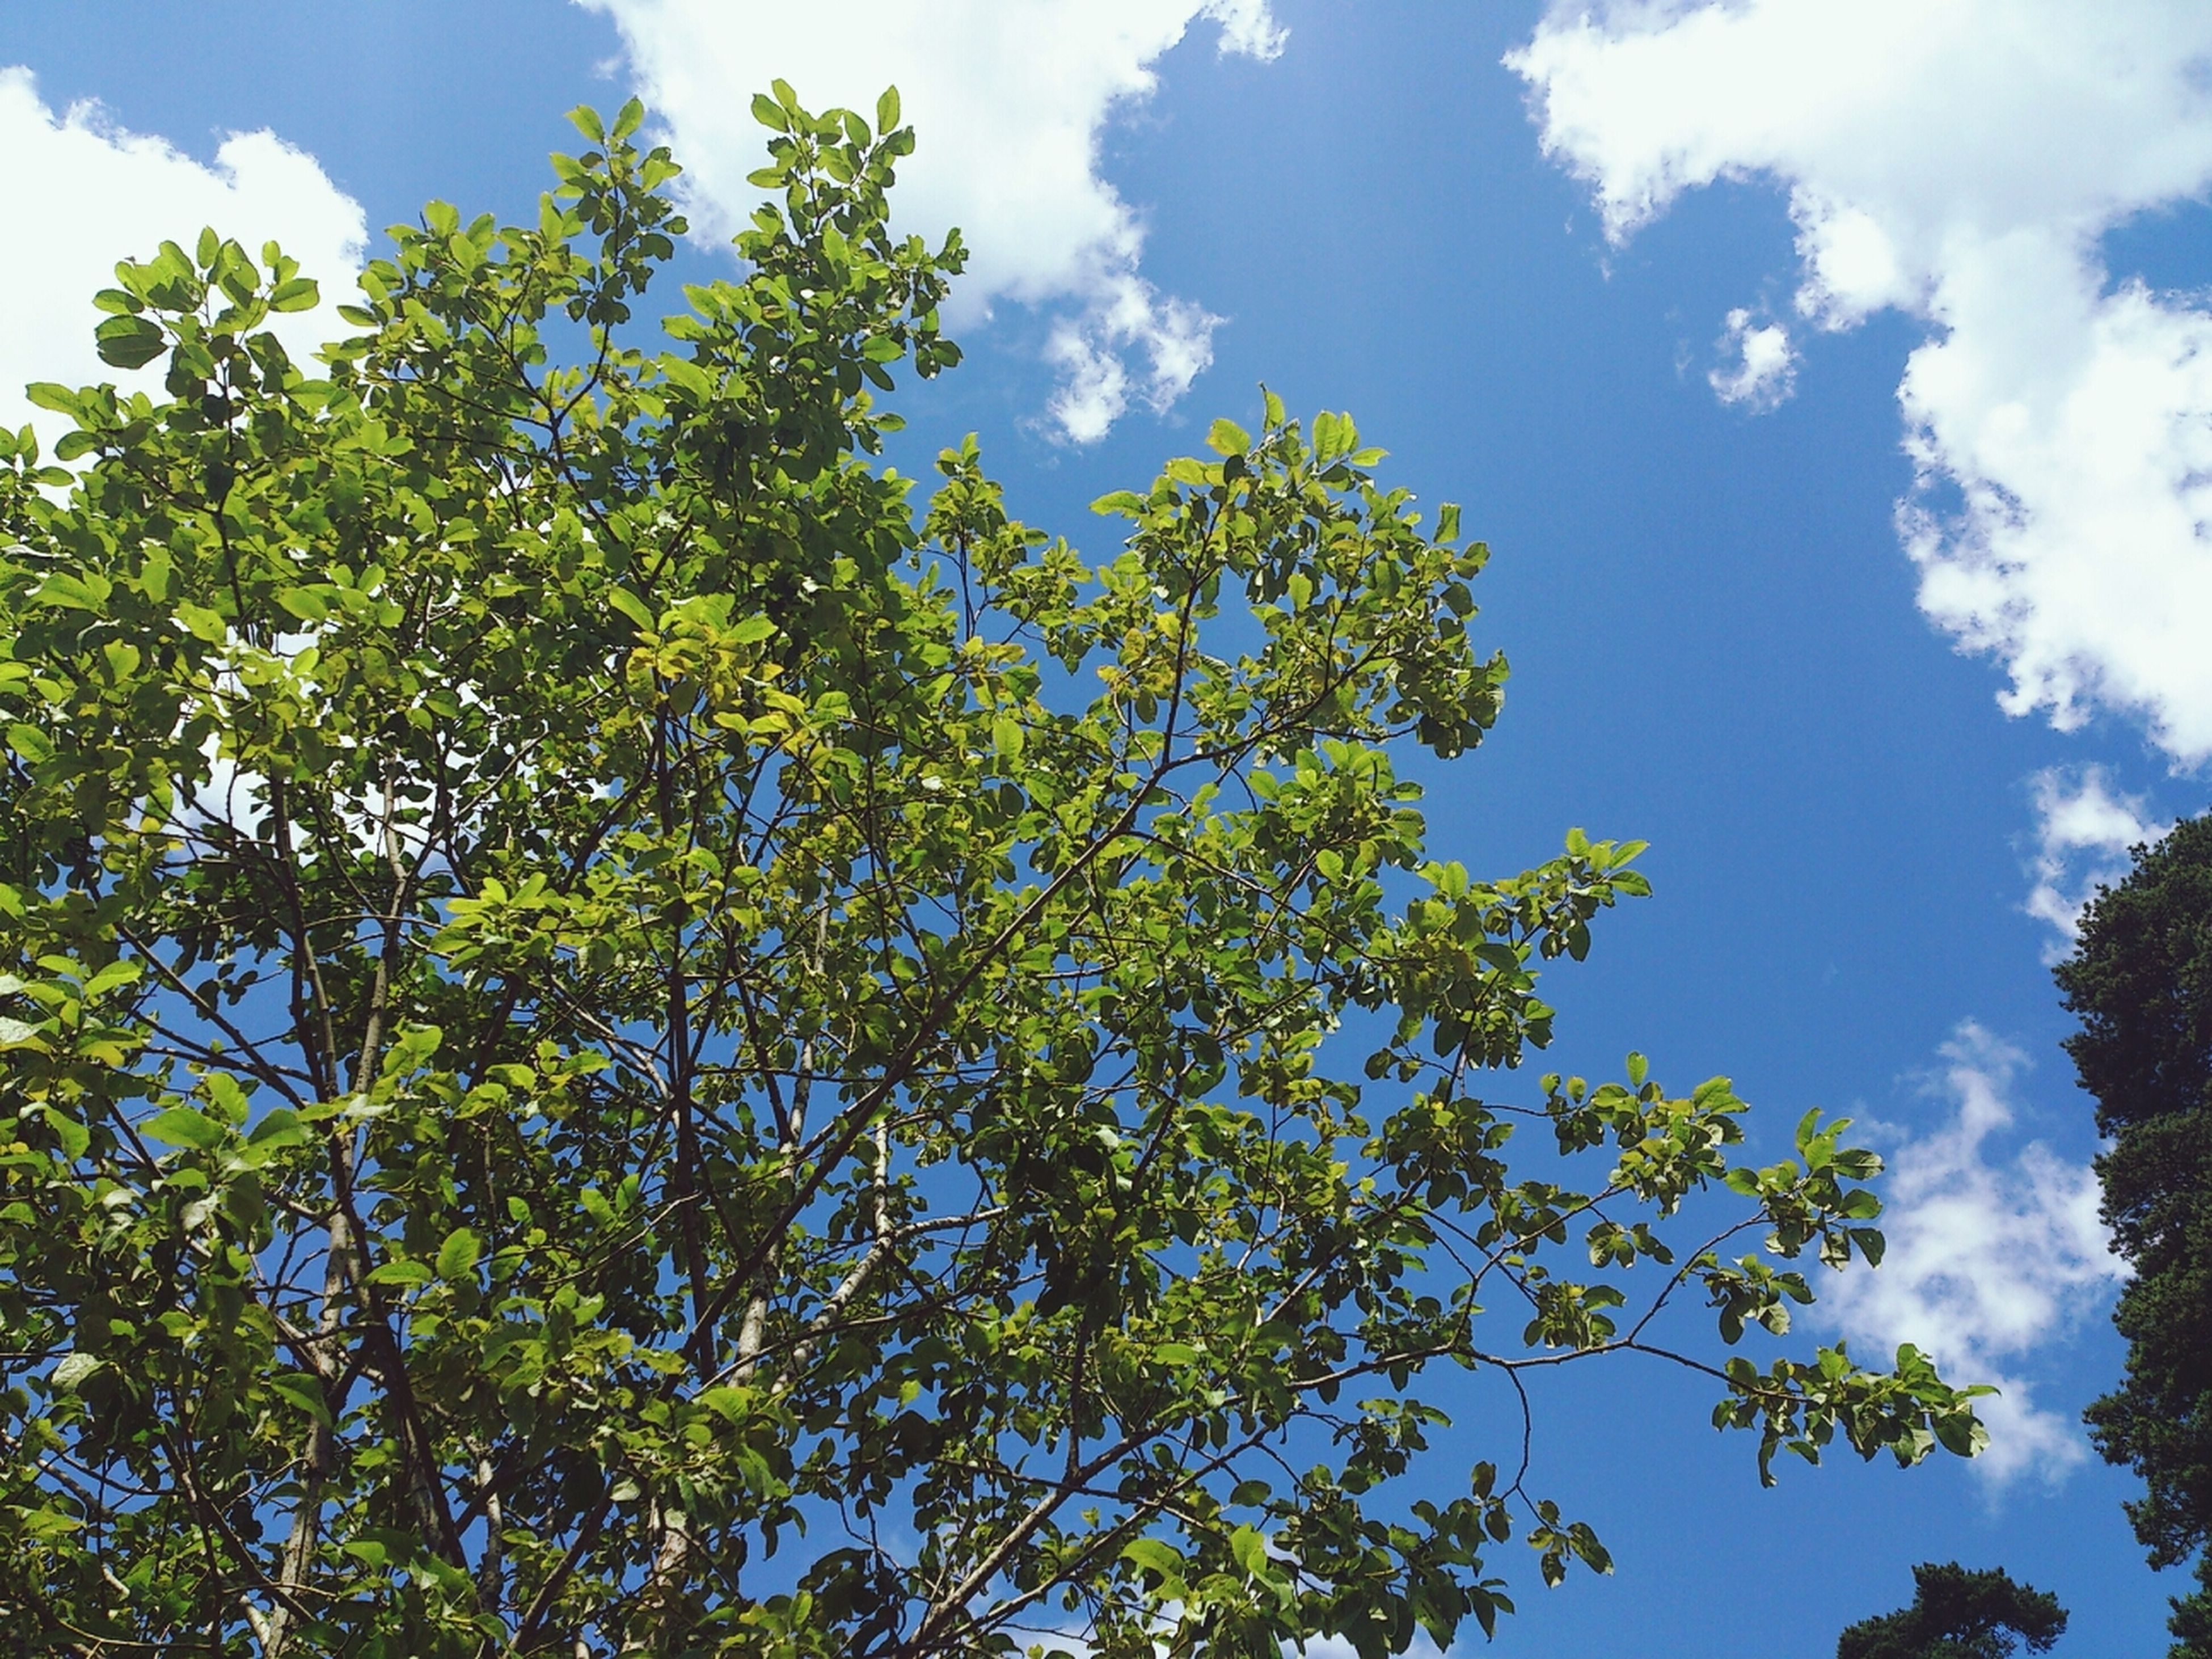 low angle view, tree, sky, growth, branch, blue, green color, nature, tranquility, beauty in nature, cloud, day, cloud - sky, leaf, no people, outdoors, sunlight, green, lush foliage, high section